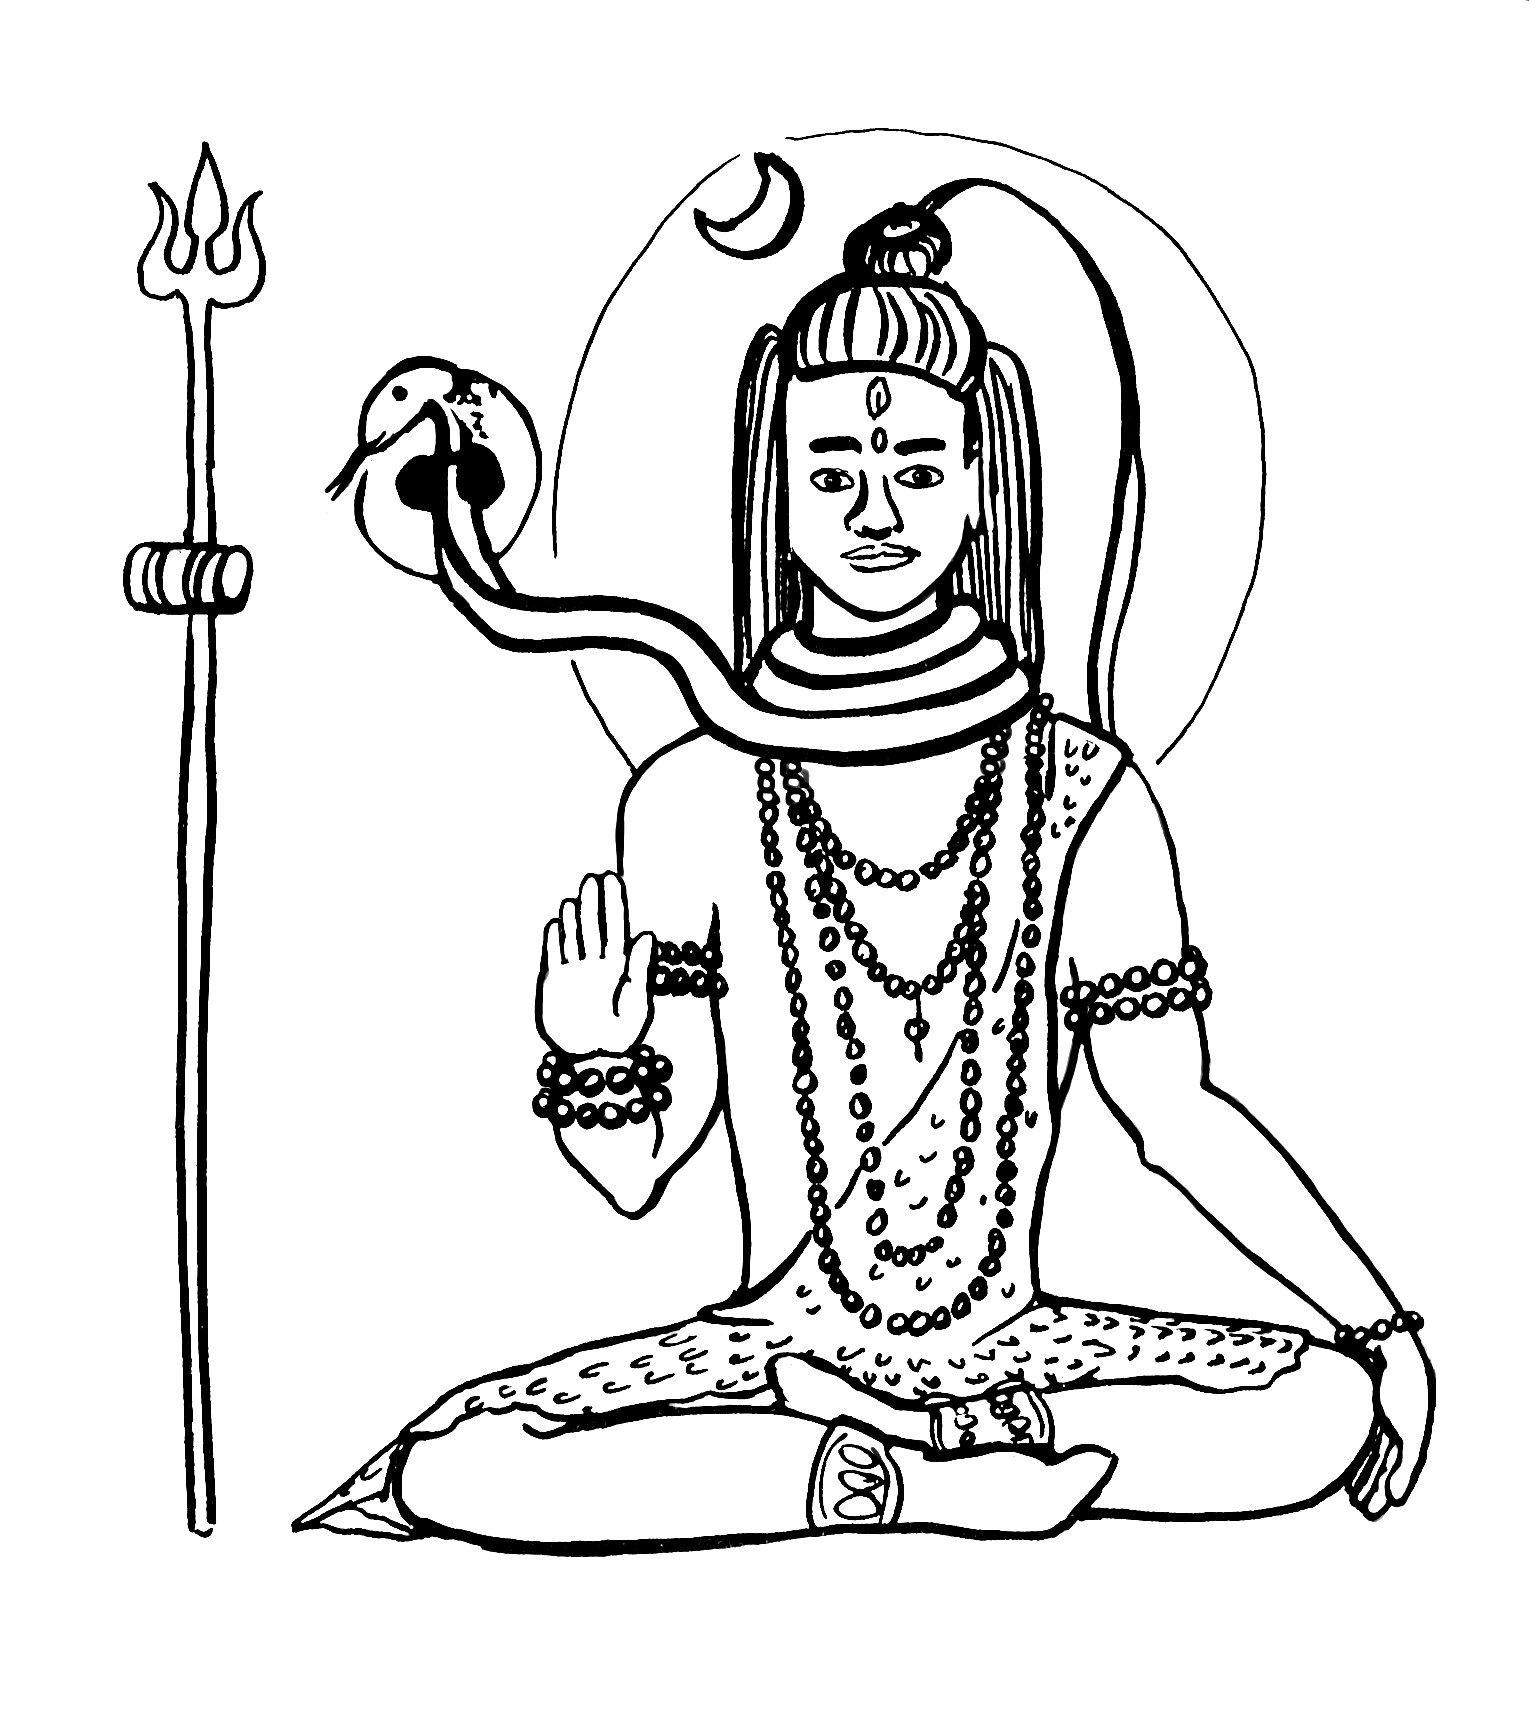 easy drawing of lord shiva shiva drawing at getdrawings free download of easy lord drawing shiva